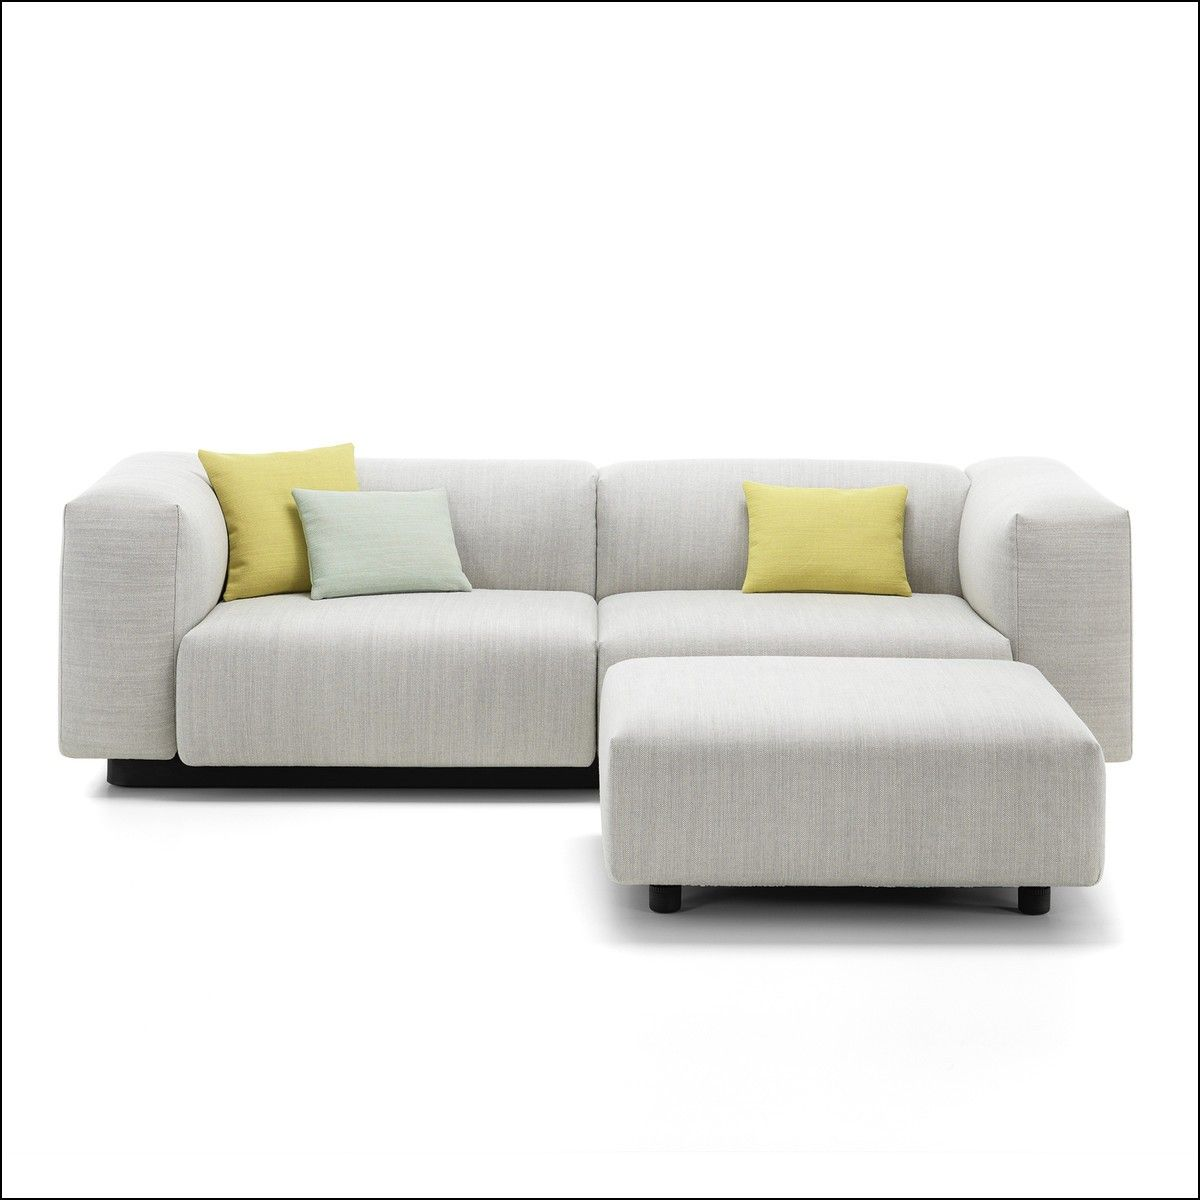 Merveilleux Two Seater Sofa With Chaise